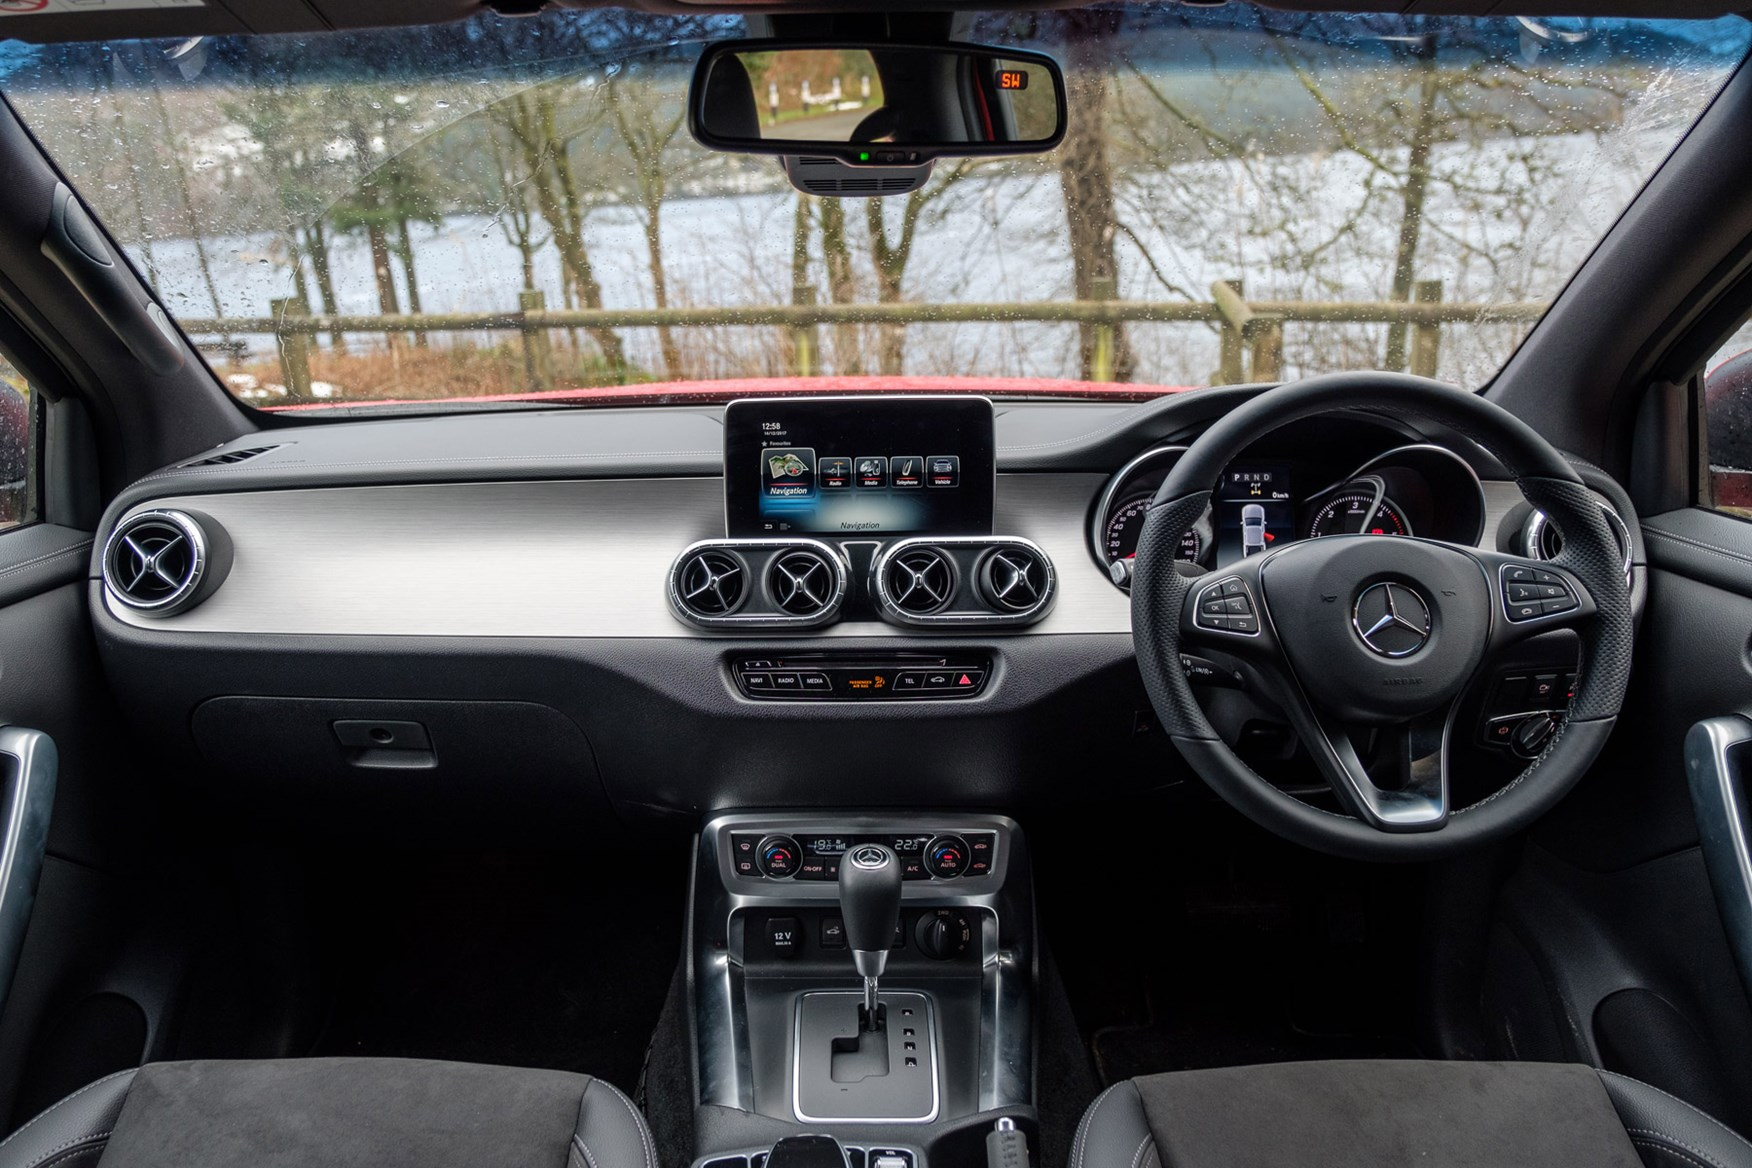 Mercedes-Benz X-Class full review on Parkers Vans - cabin